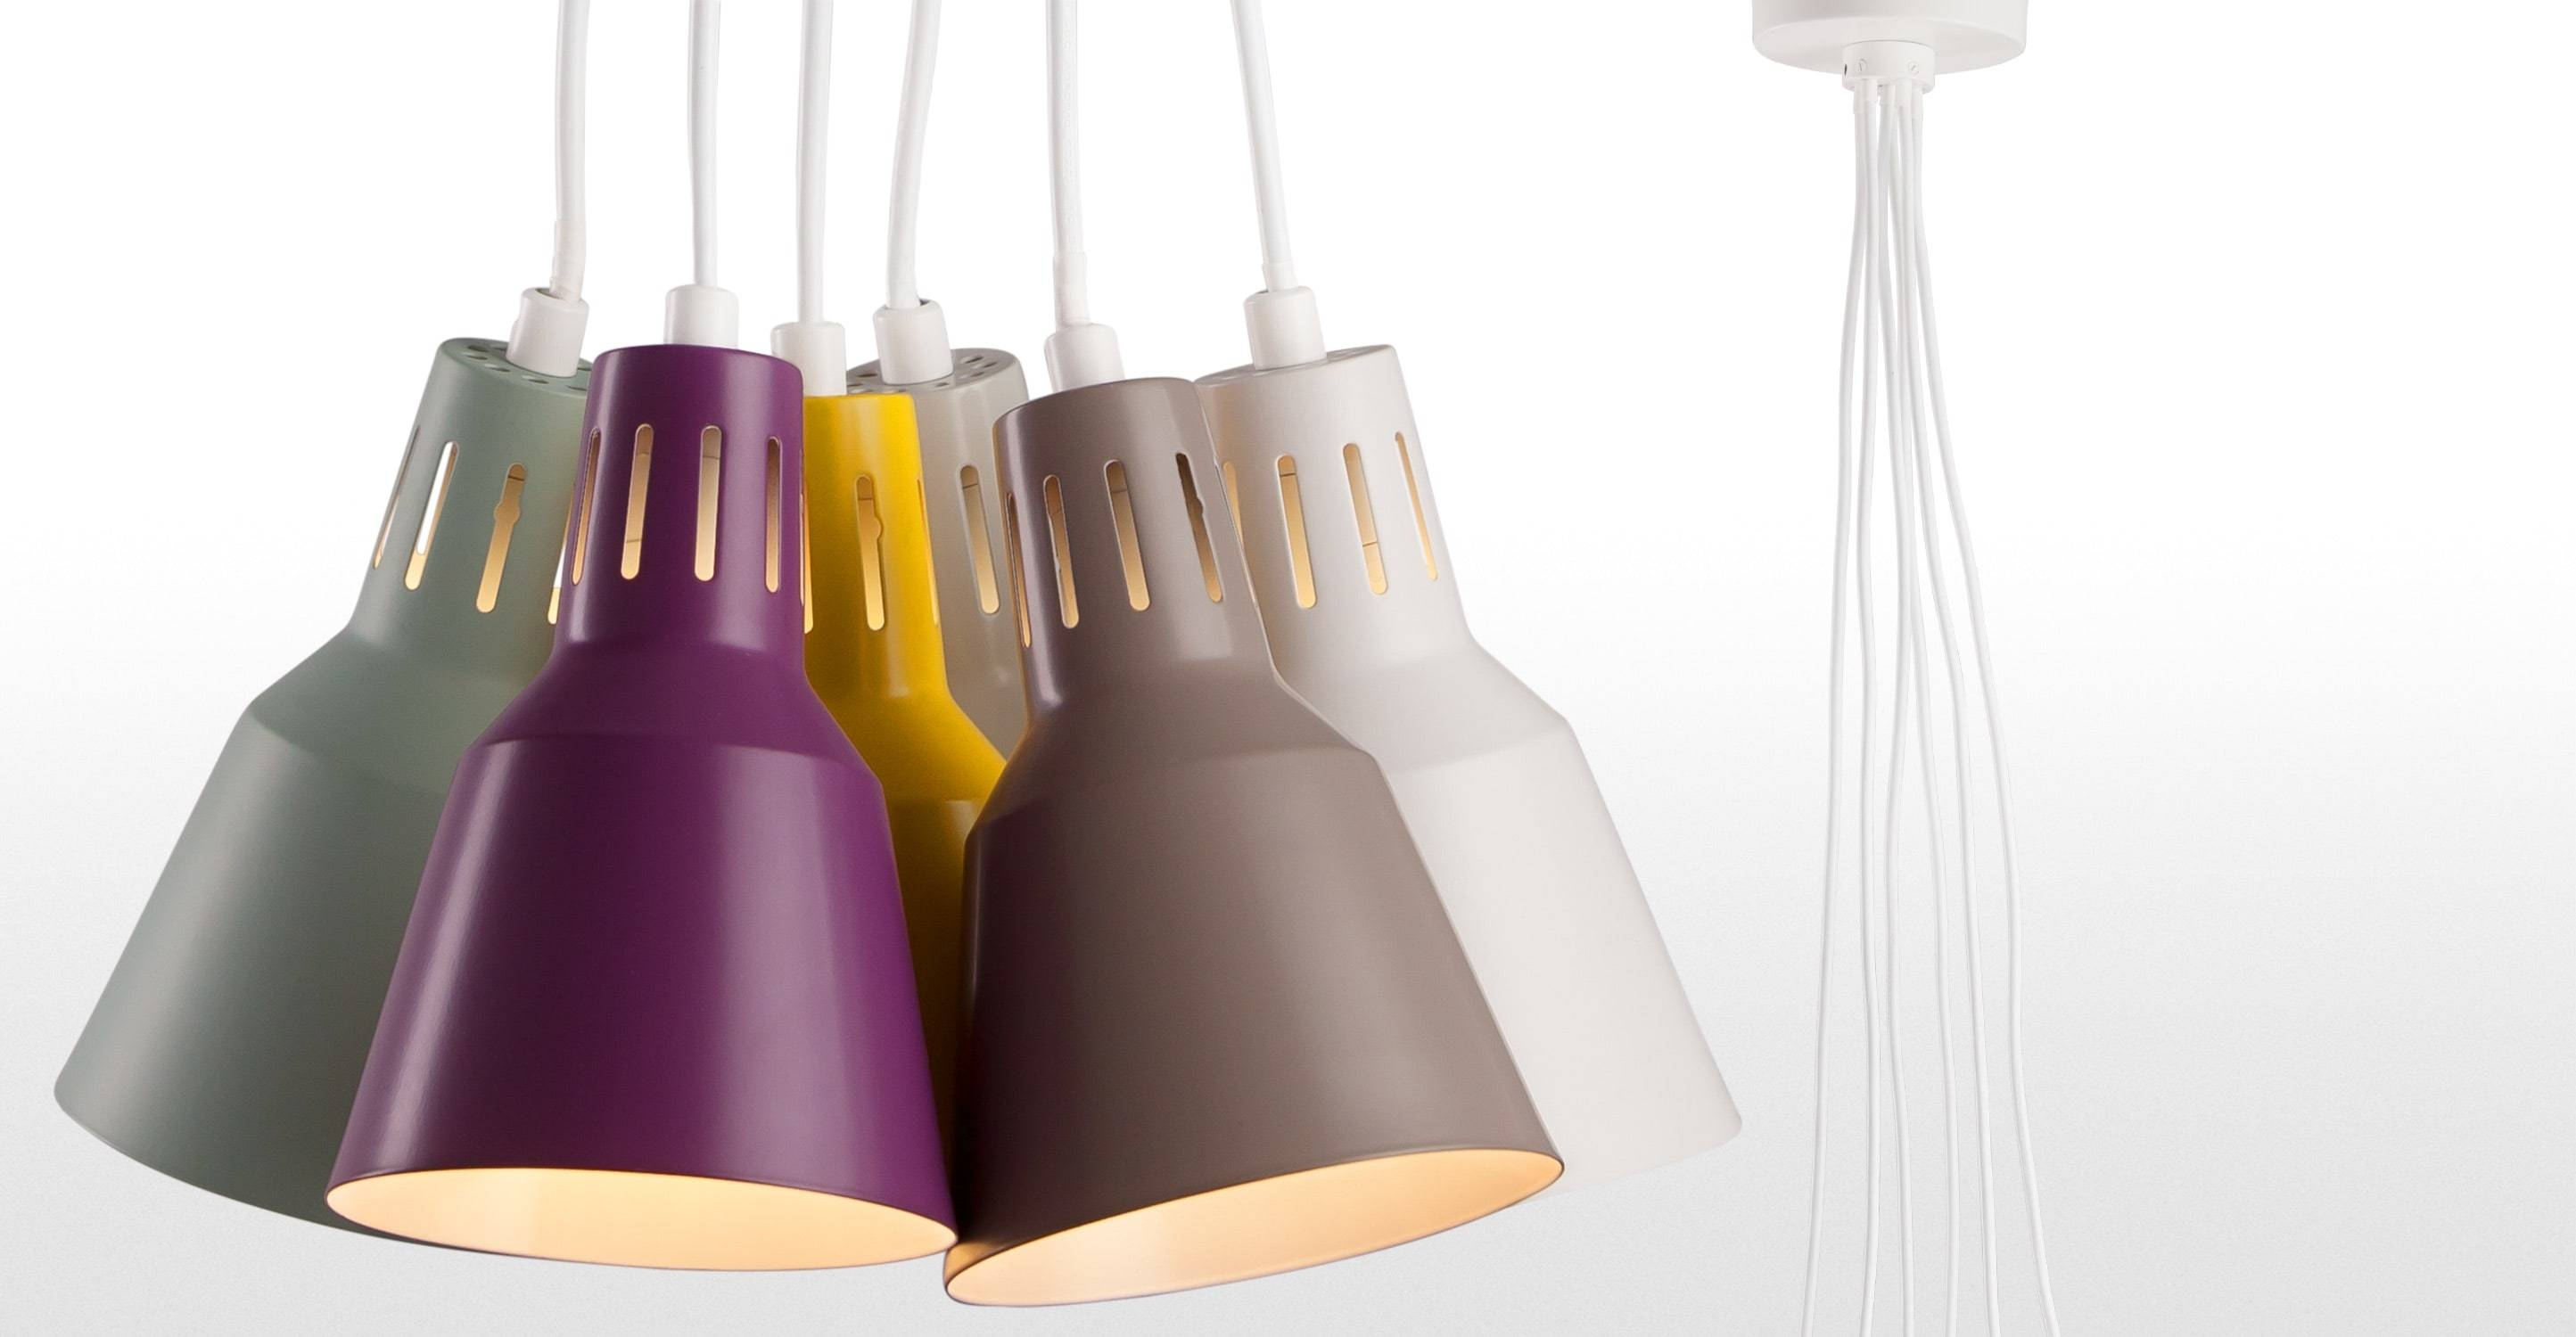 Arnold Pendant Light In Multicolour | Made with regard to Multi Coloured Pendant Lights (Image 3 of 15)